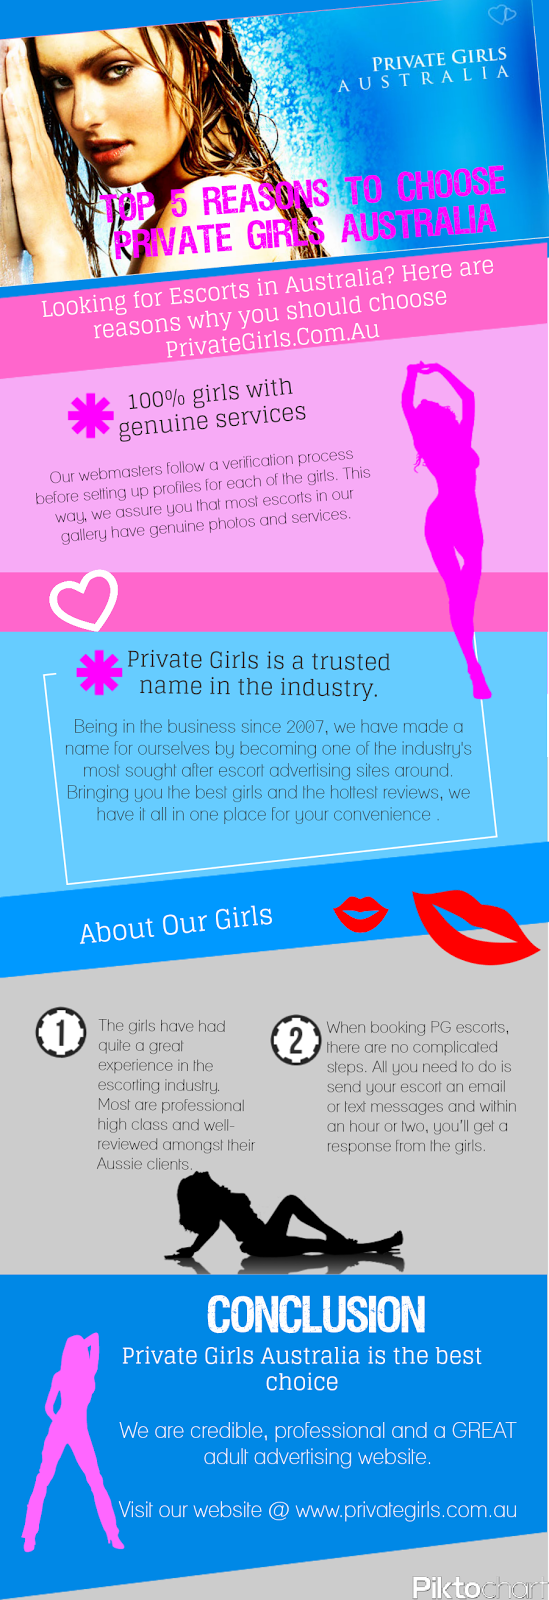 Private Girls Australia Info Graph